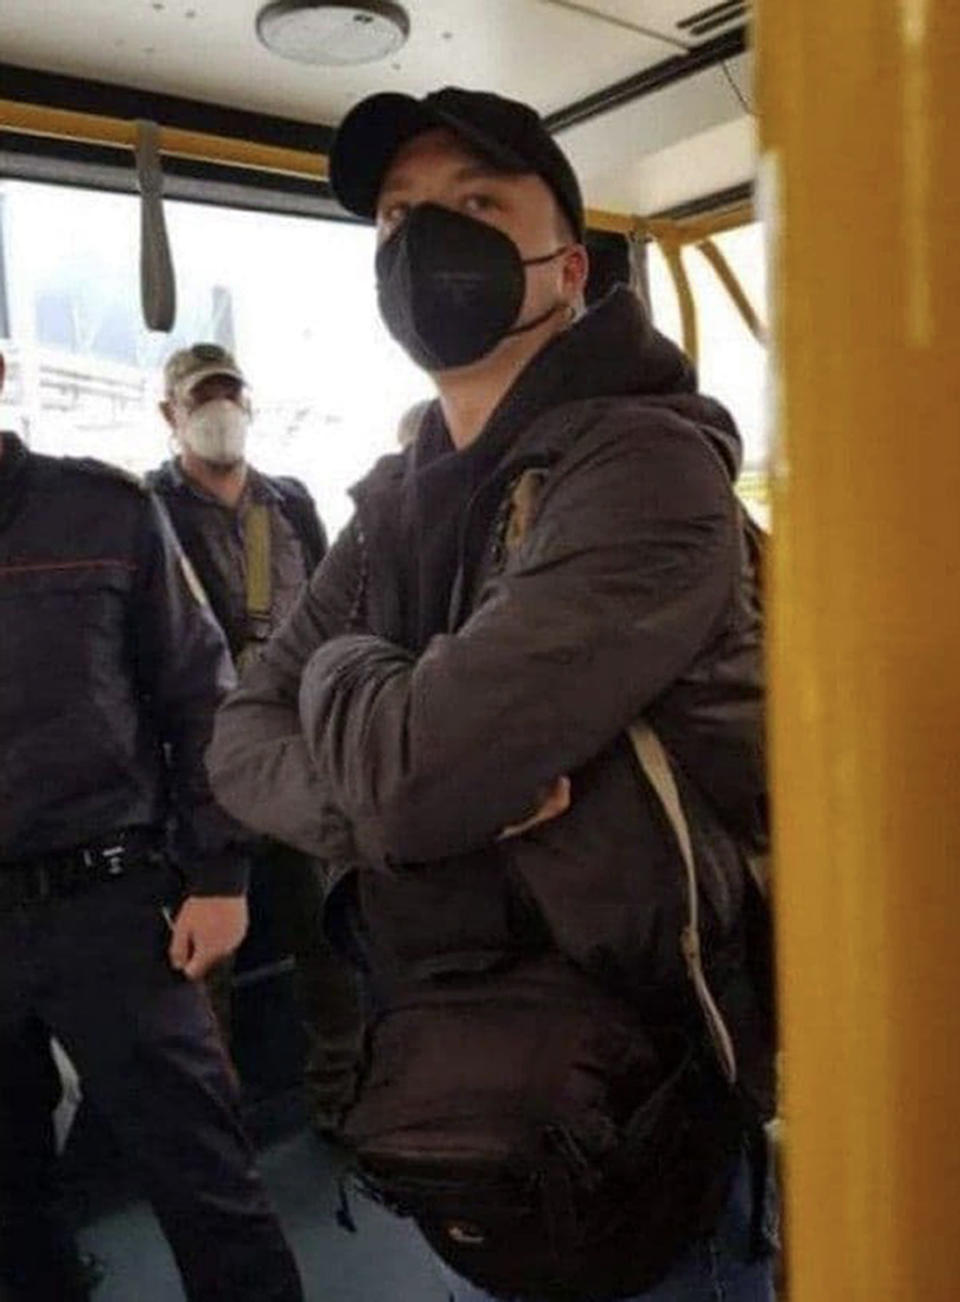 FILE - In this photo released May 23, 2021, by telegram Chanel t.me/motolkohelp, Belarus journalist Raman Pratasevich wearing a face mask, stands in an airport bus in the international airport in Minsk, Belarus. As he was returning Sunday to the Lithuanian capital of Vilnius from Greece with his girlfriend aboard a Ryanair jet, Belarusian flight controllers told the crew to divert to Minsk, citing a bomb threat. Pratasevich was arrested after the plane landed. (telegram Chanel t.me/motolkohelpp via AP, File)